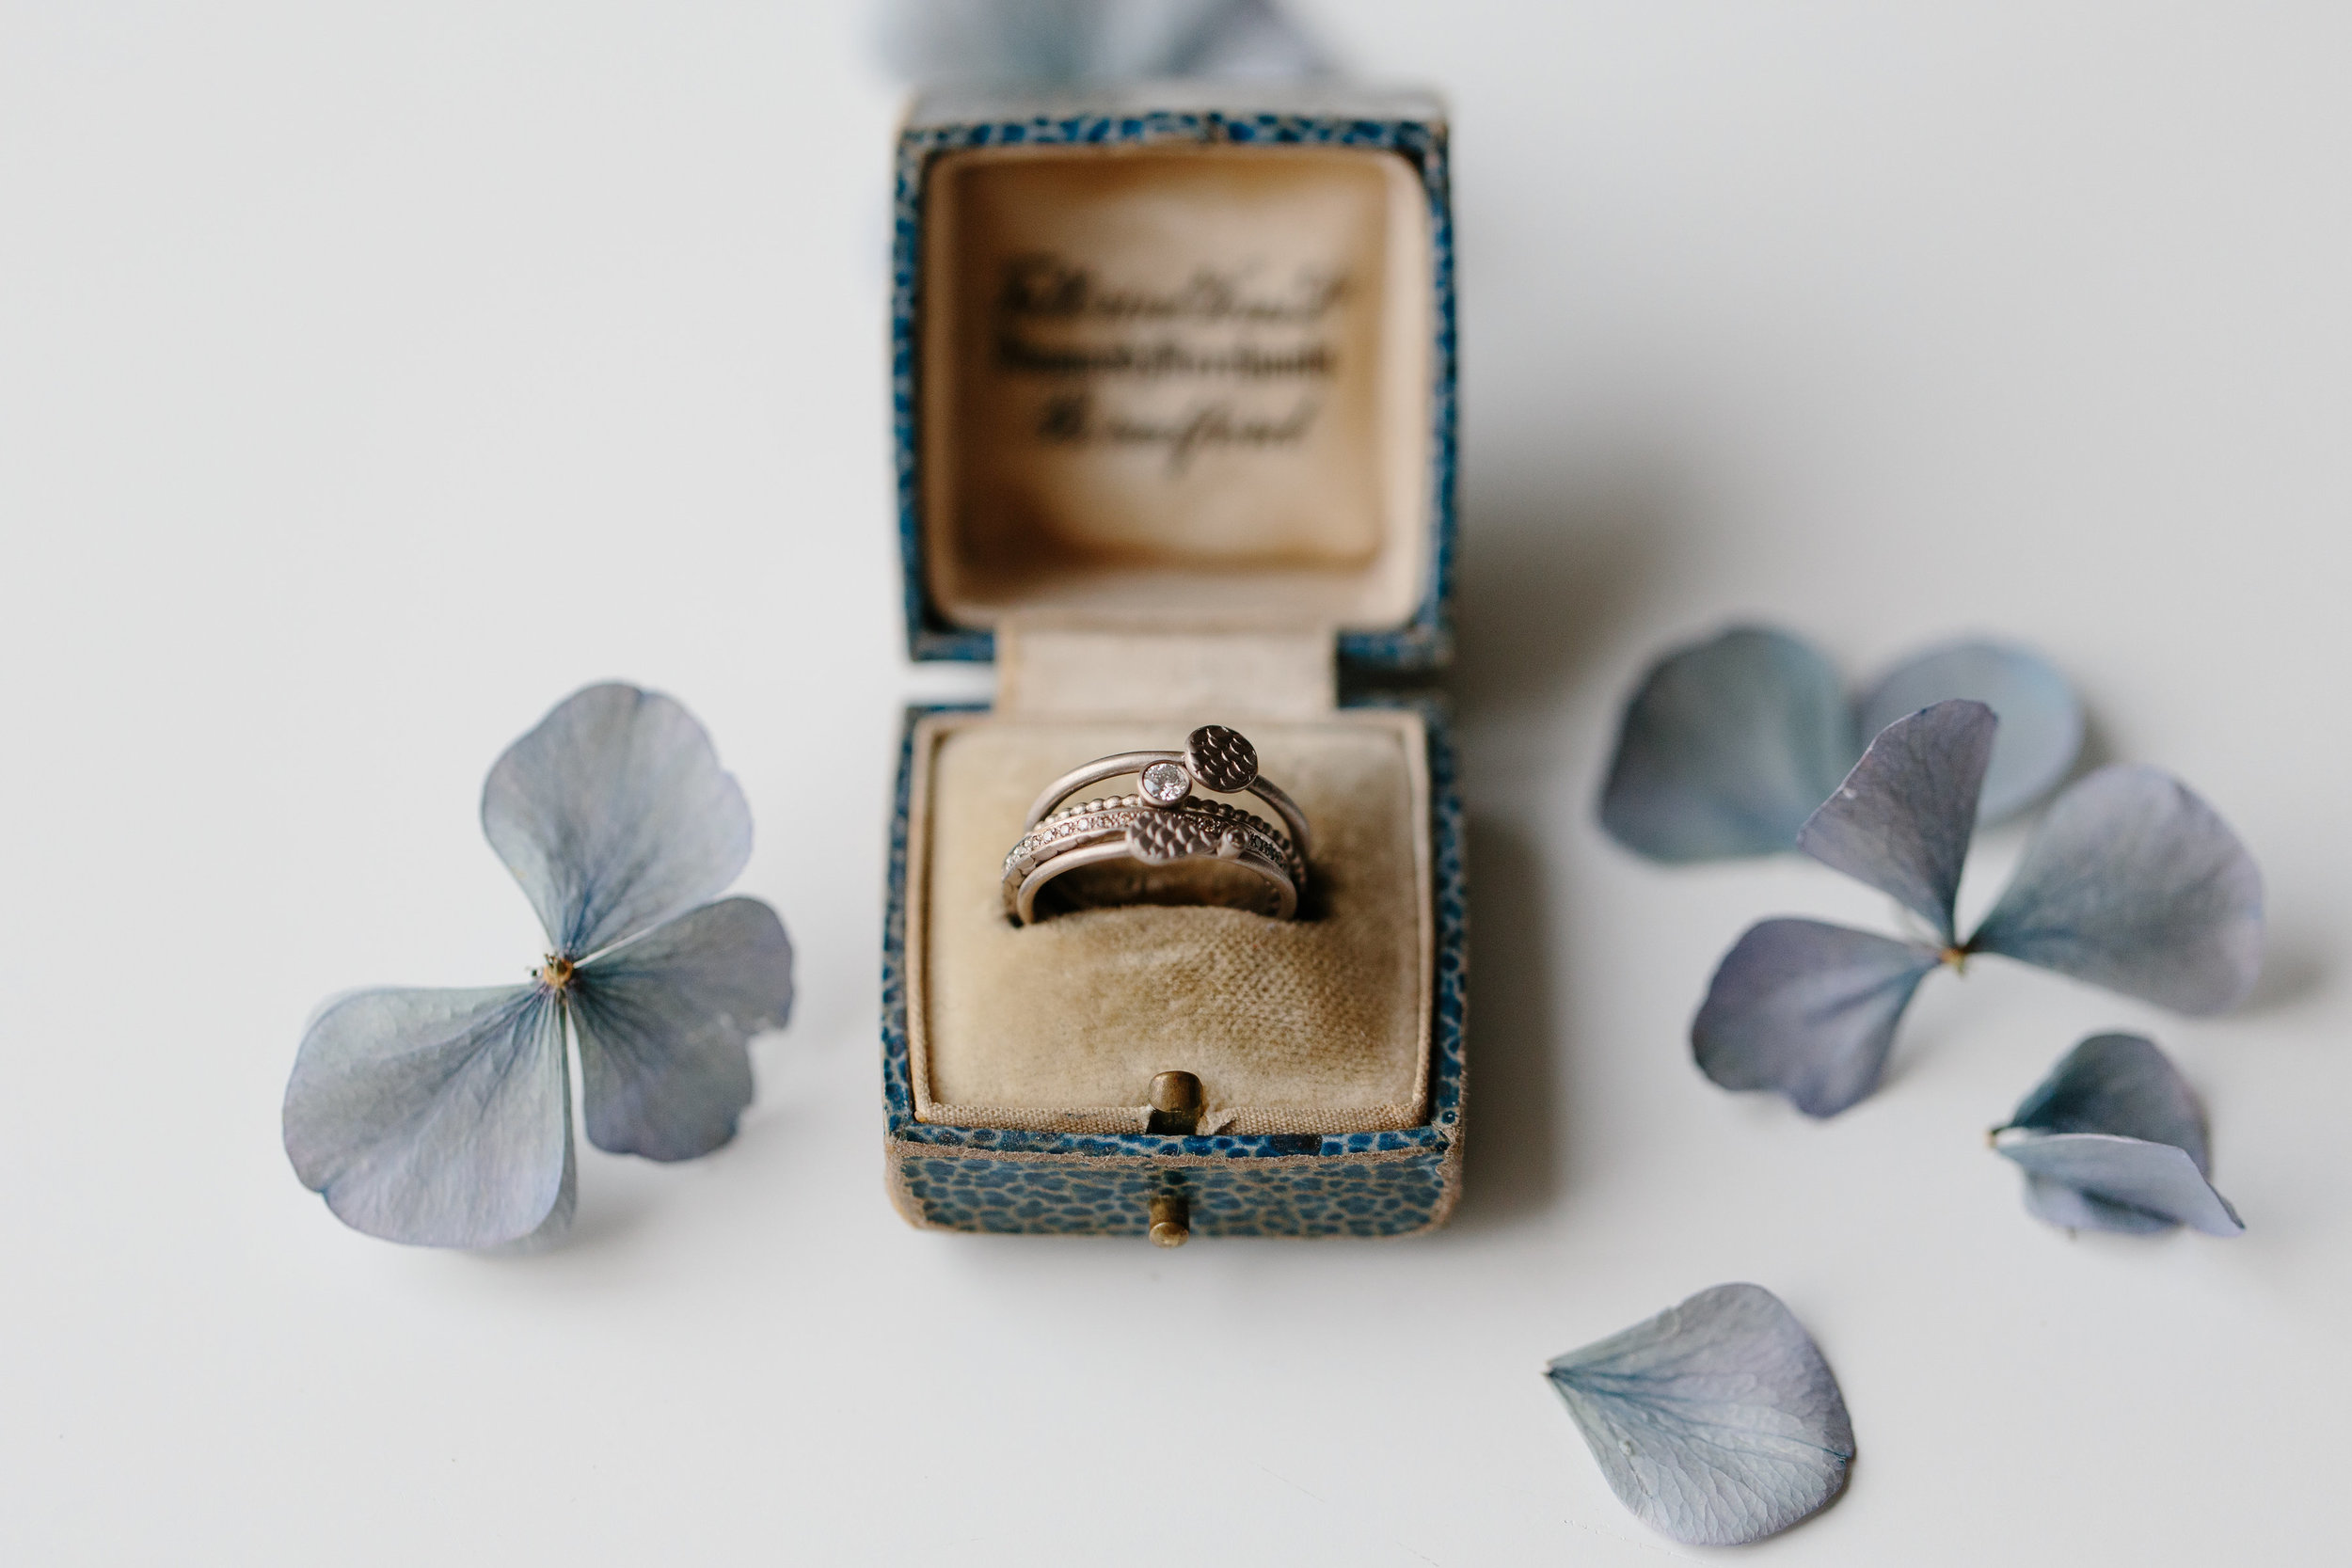 vintage ring boxes - Every order comes packaged in a vintage jewellery box. Once your order is ready we will send you an email with pictures of the boxes we have in stock for you to choose from.